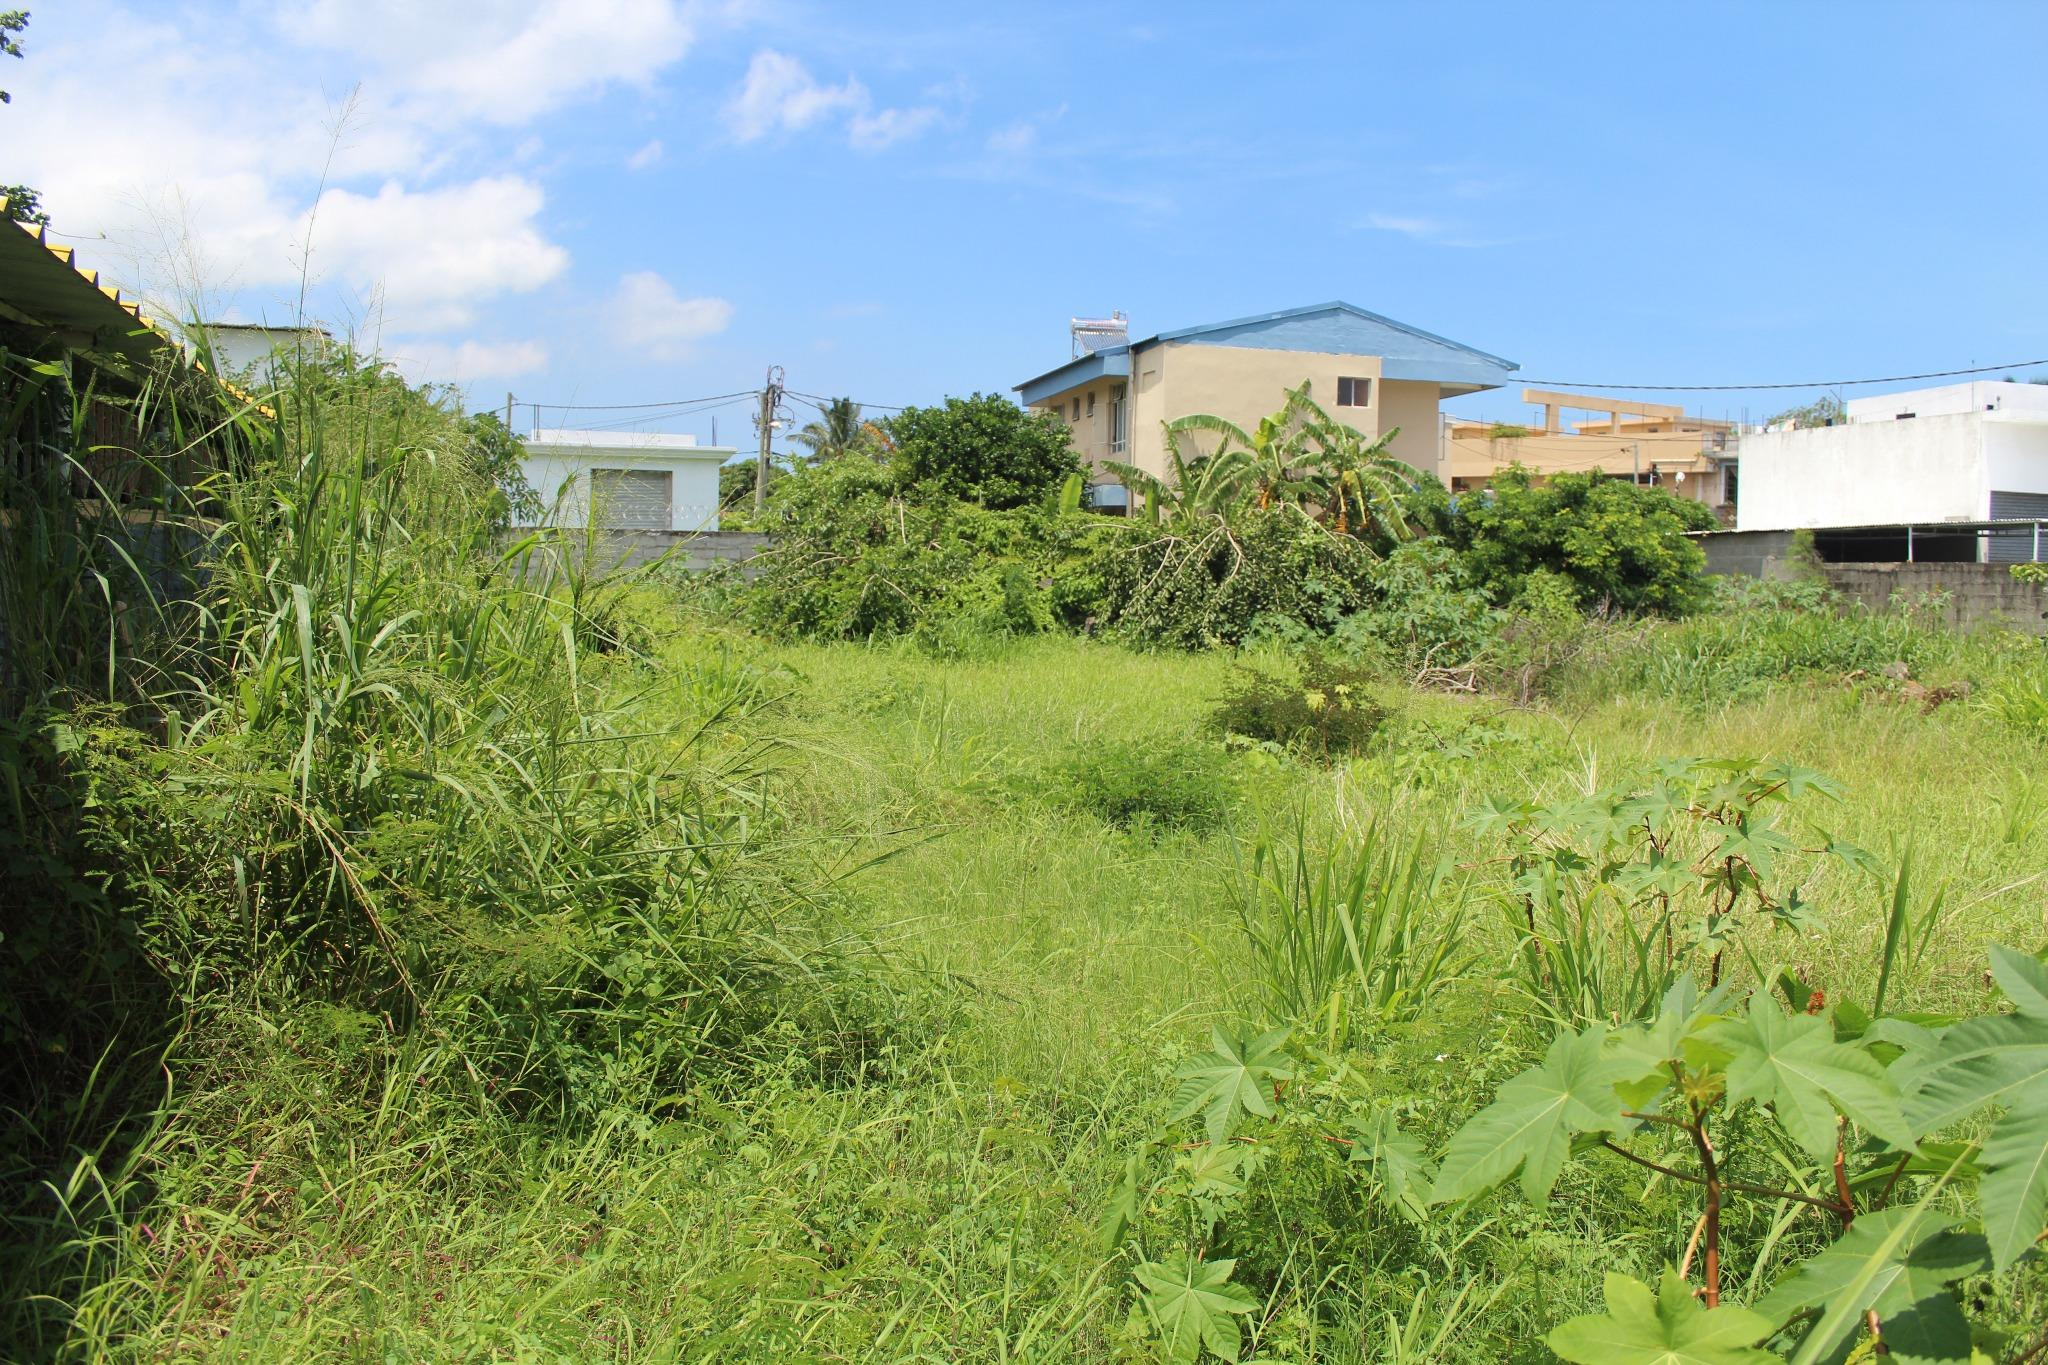 FOR SALE – Fenced land of 255 toises located in Pointe aux Sables